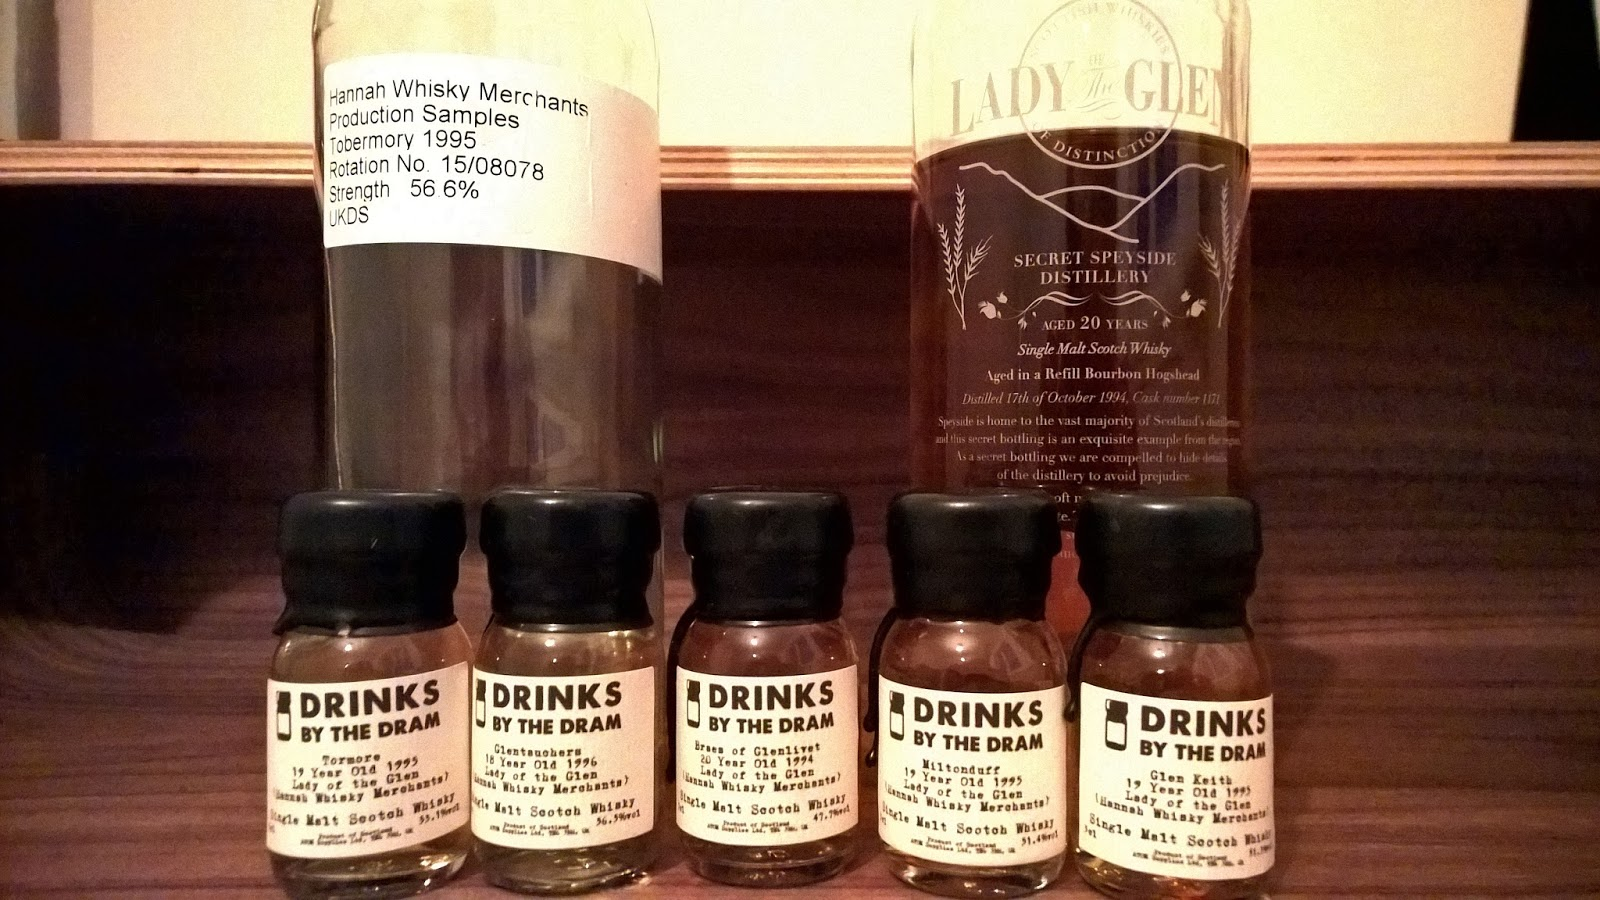 lady_of_the_glen_whisky_tasting